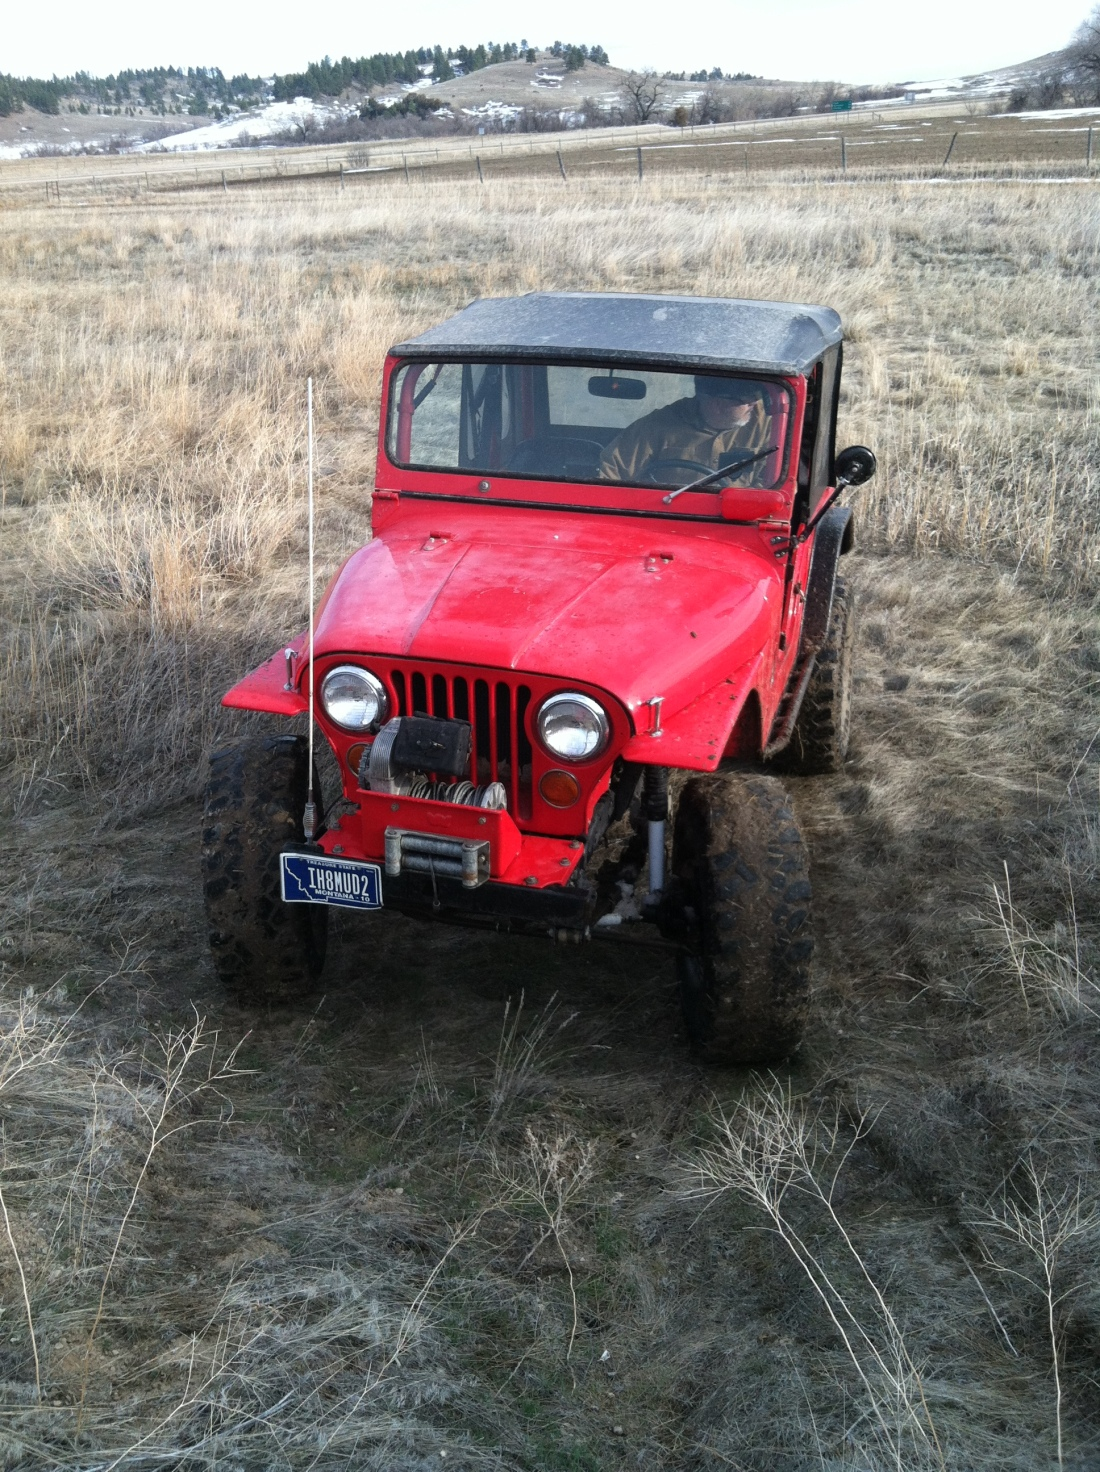 Wheelin the Ranch